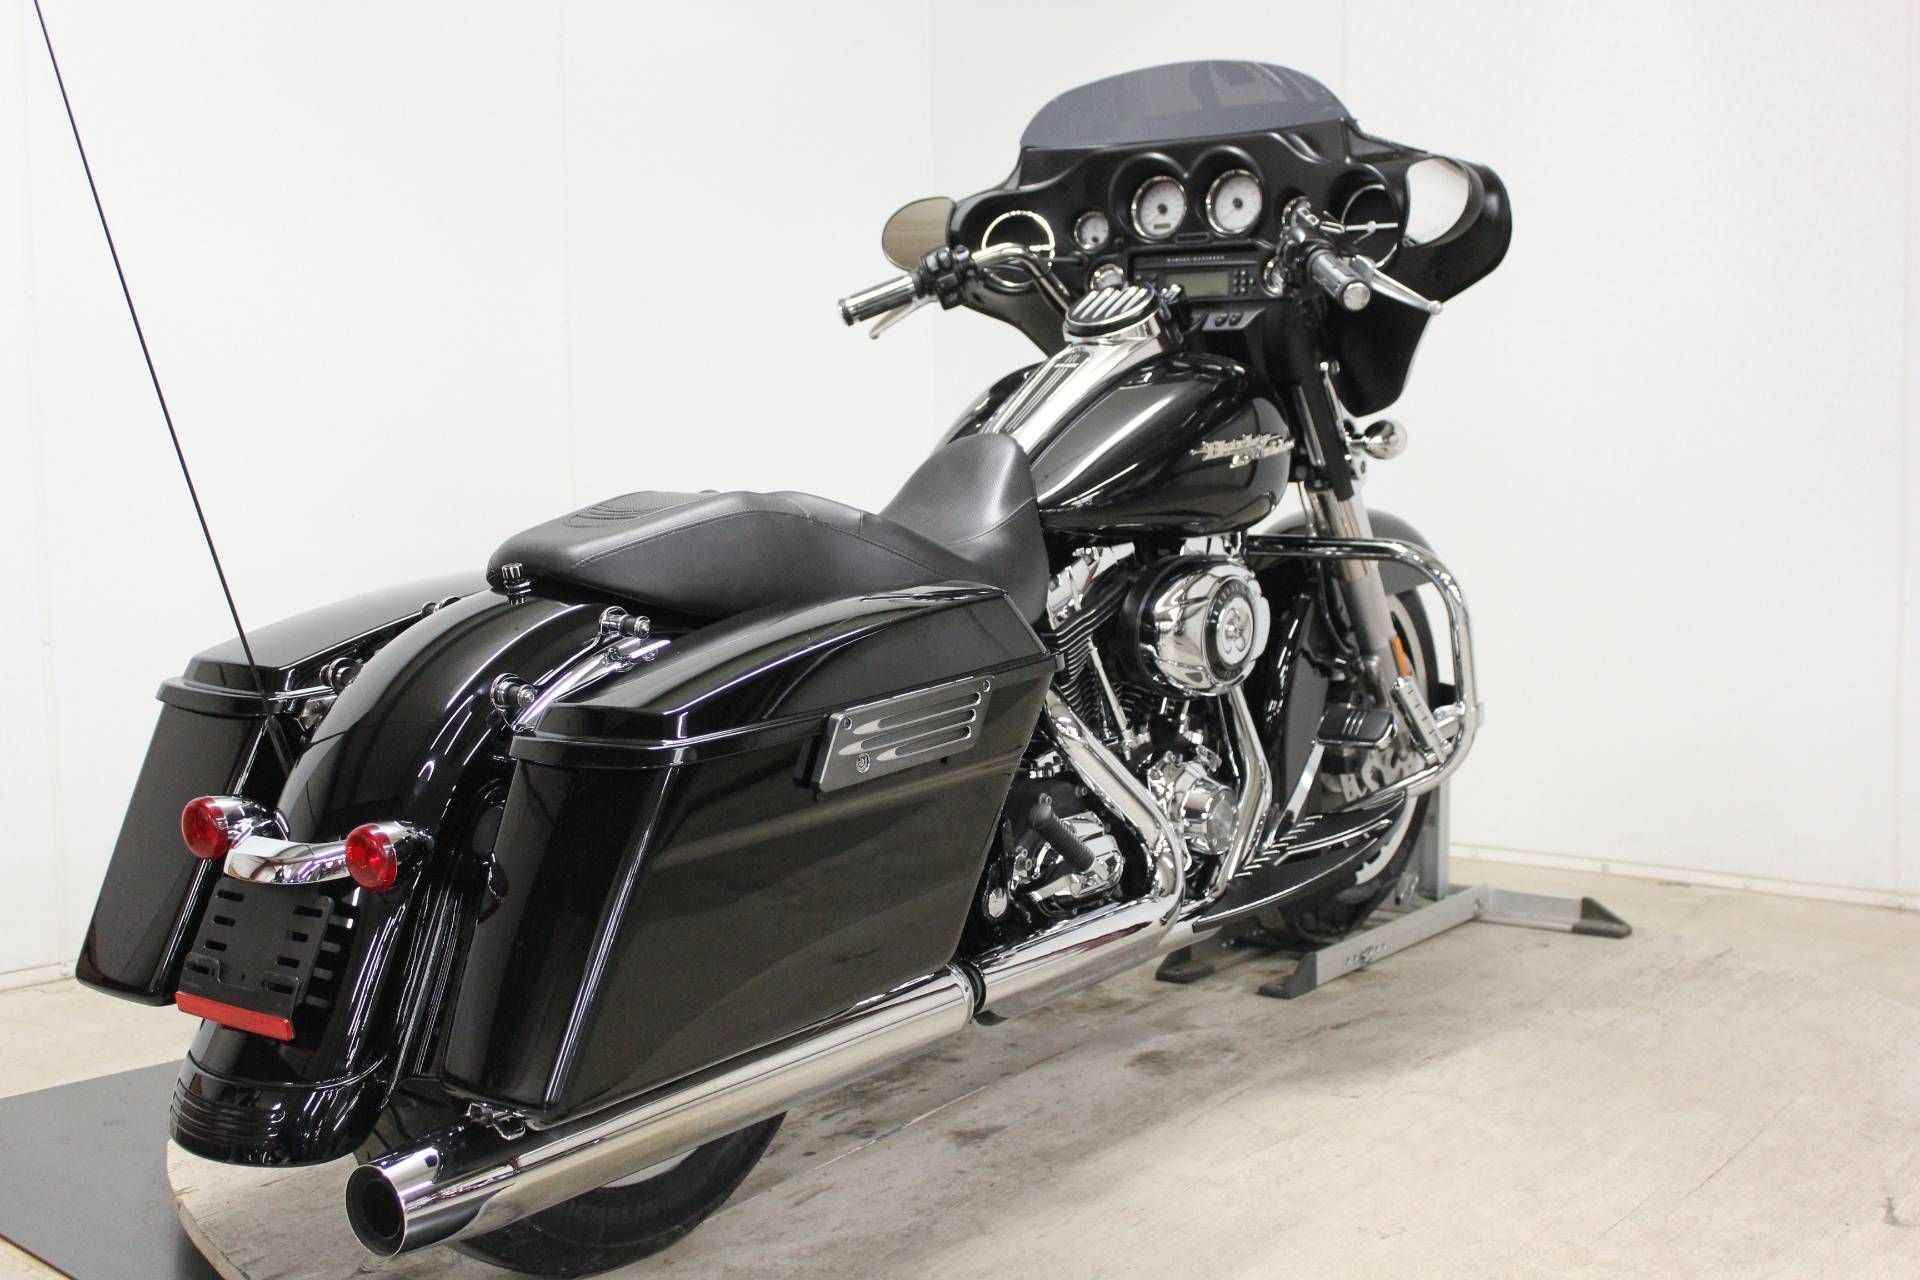 2010 Harley-Davidson Street Glide® in Pittsfield, Massachusetts - Photo 8